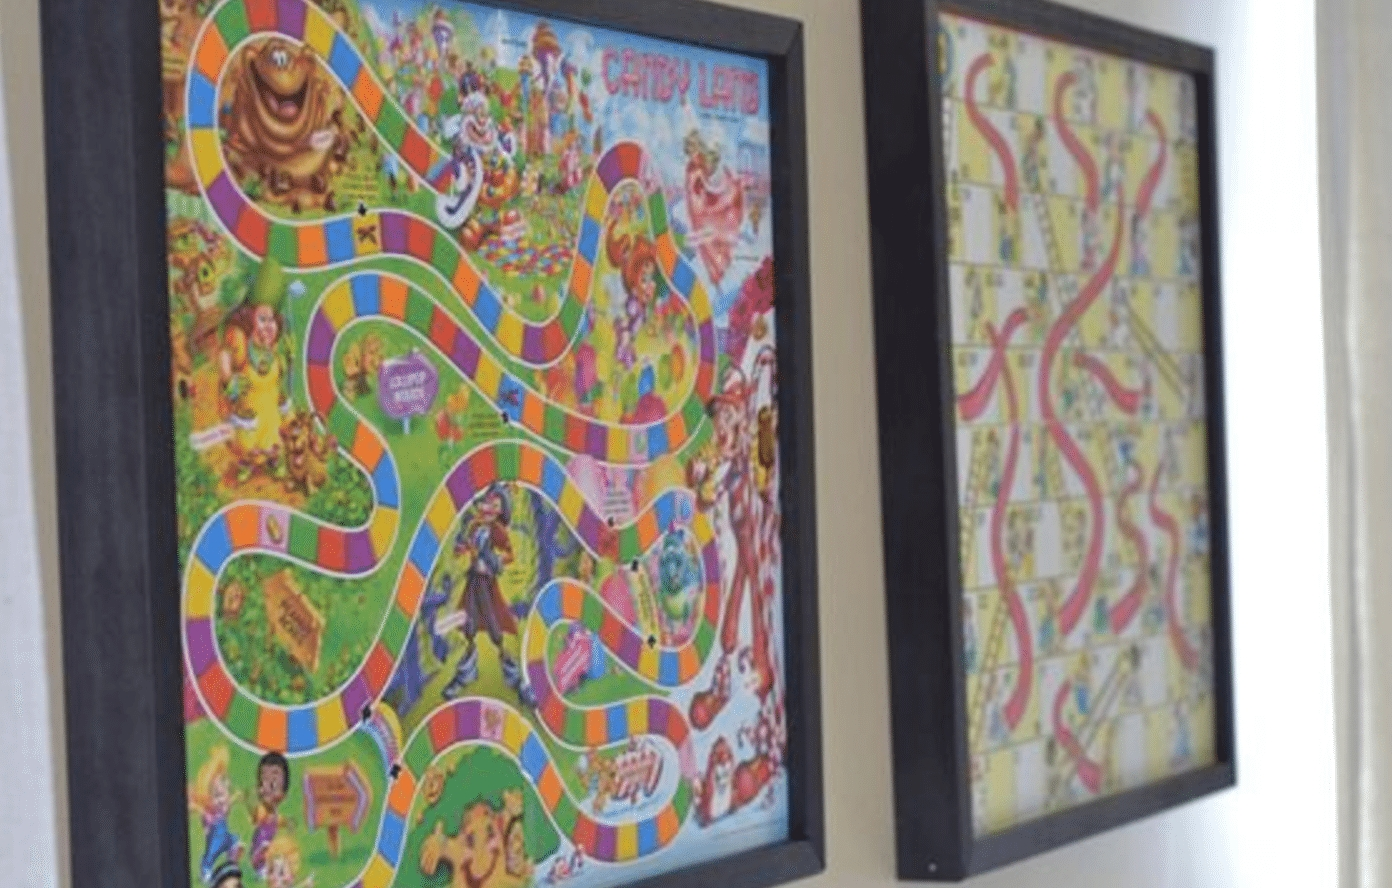 Framed Board Games May Be The Best Game Storage Idea Out There Regarding Board Game Wall Art (Image 11 of 20)